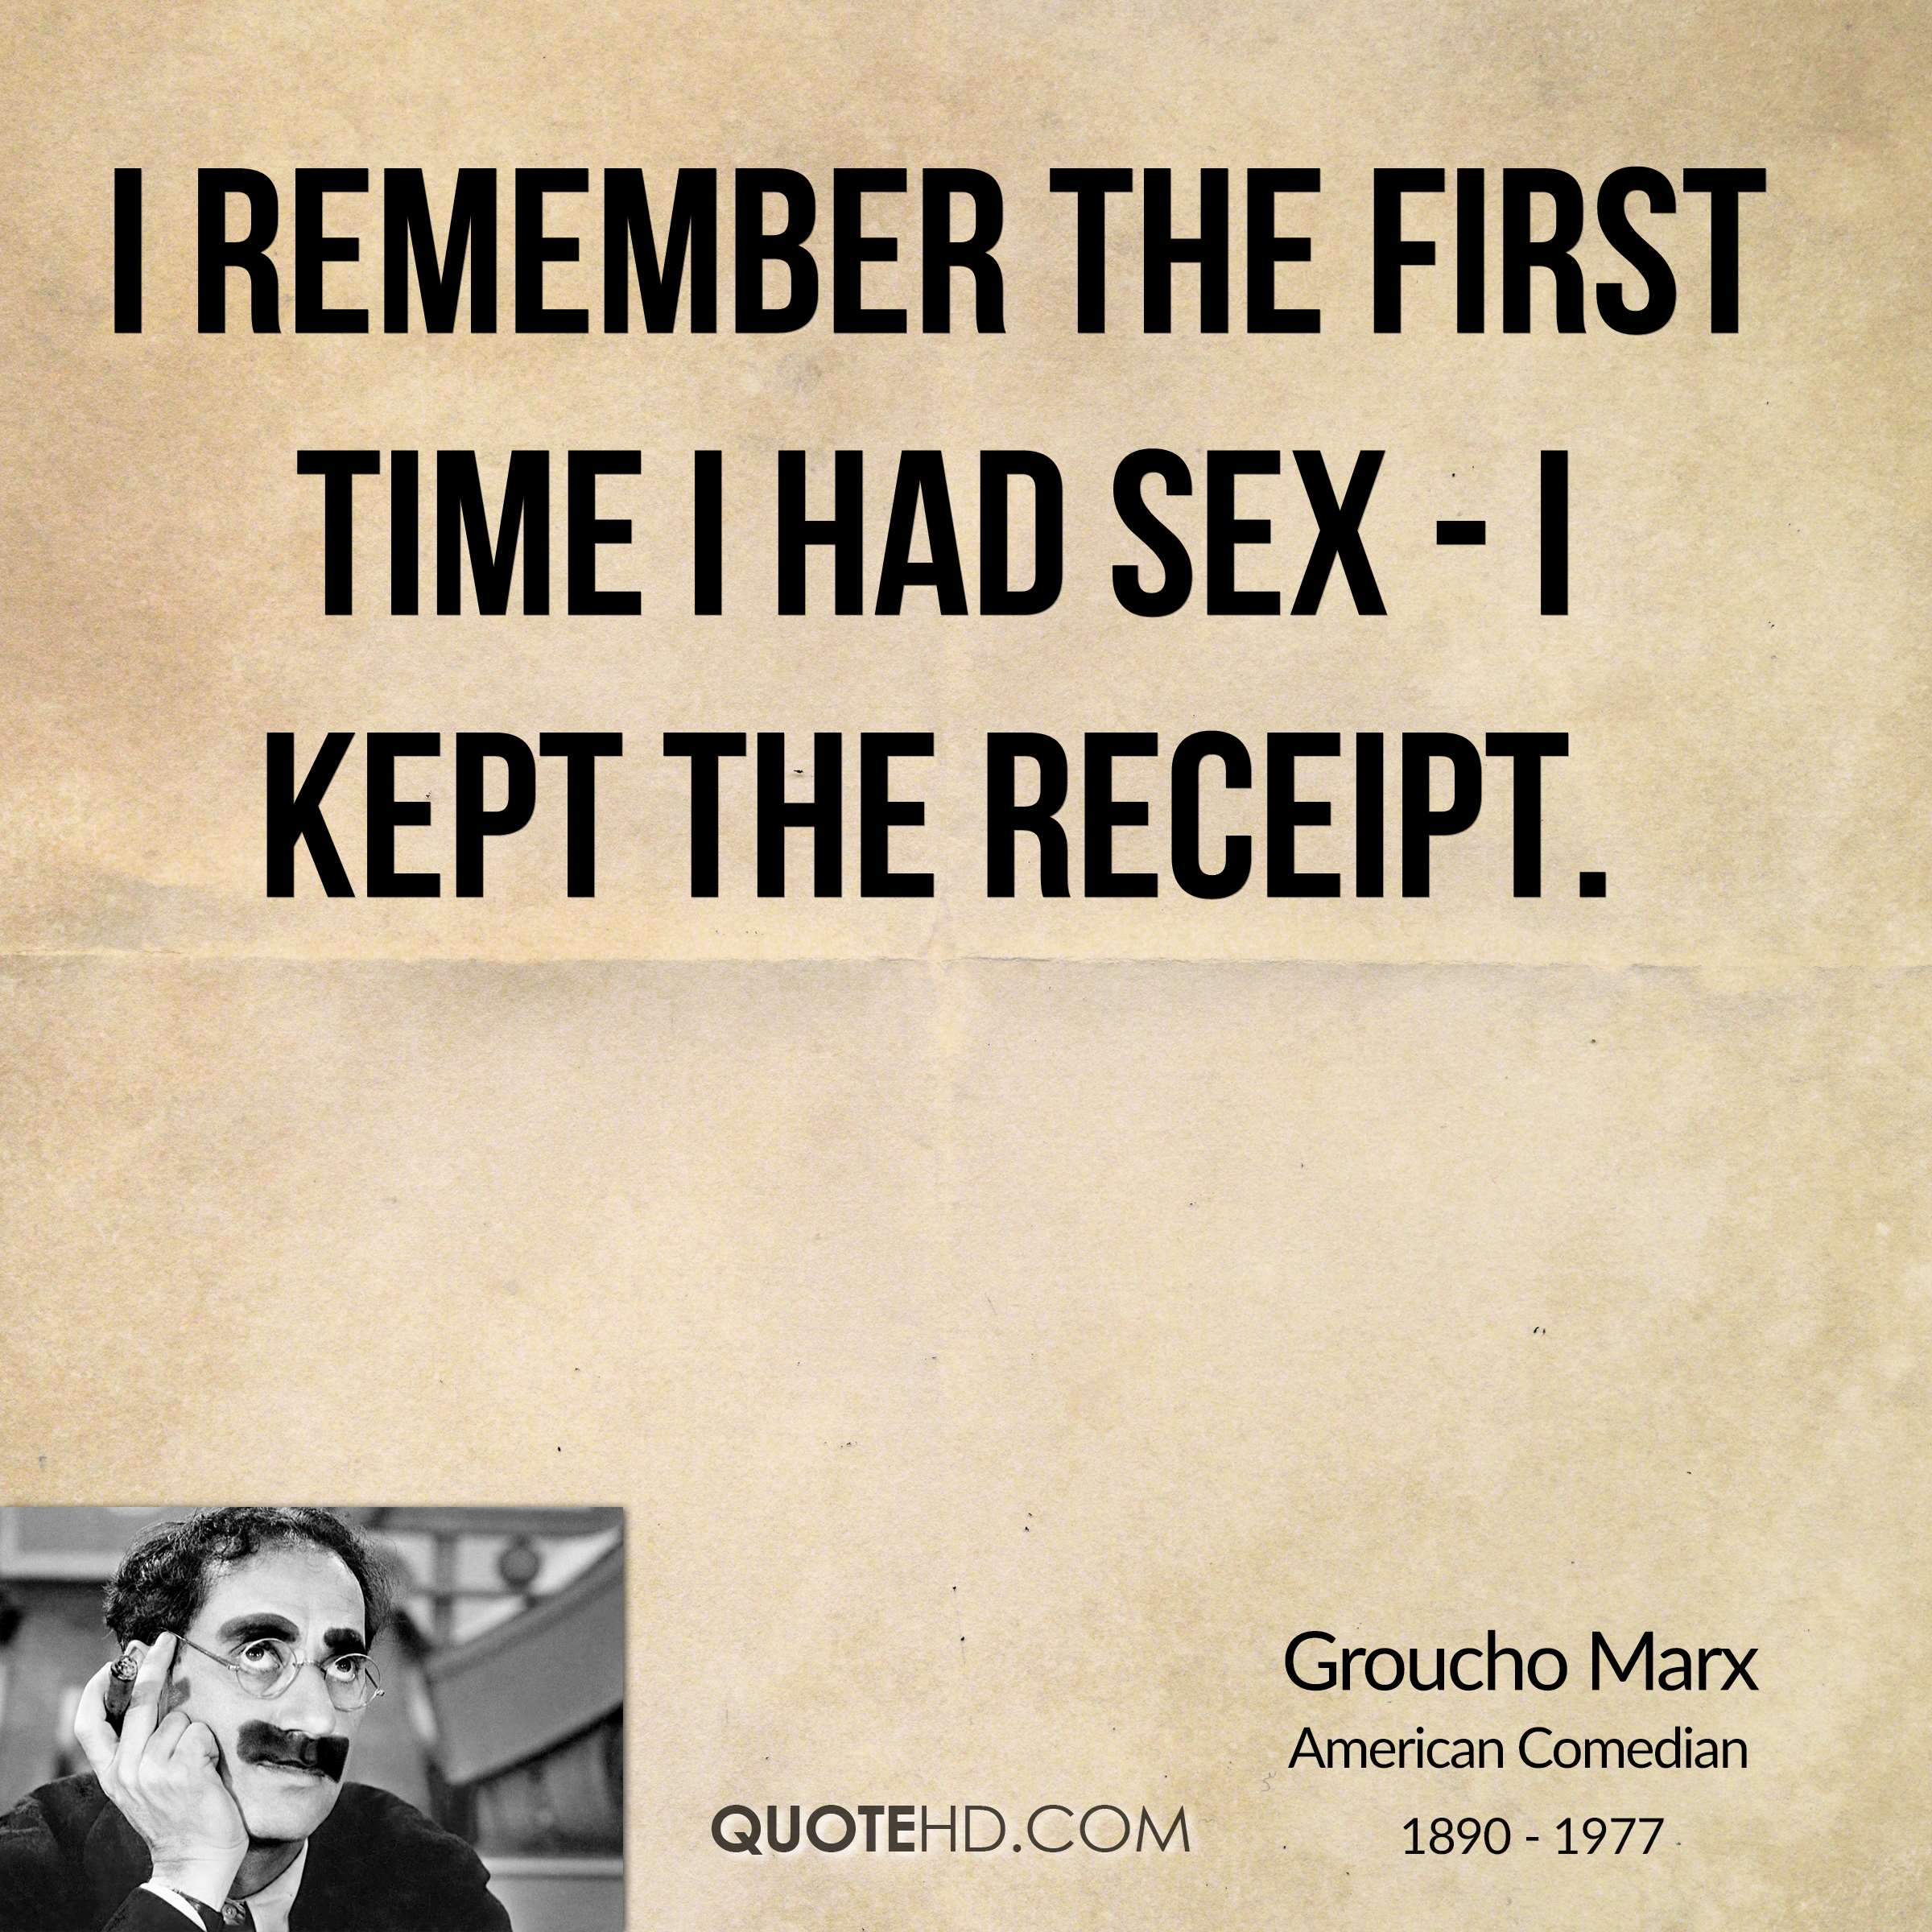 I remember the first time I had sex - I kept the receipt.